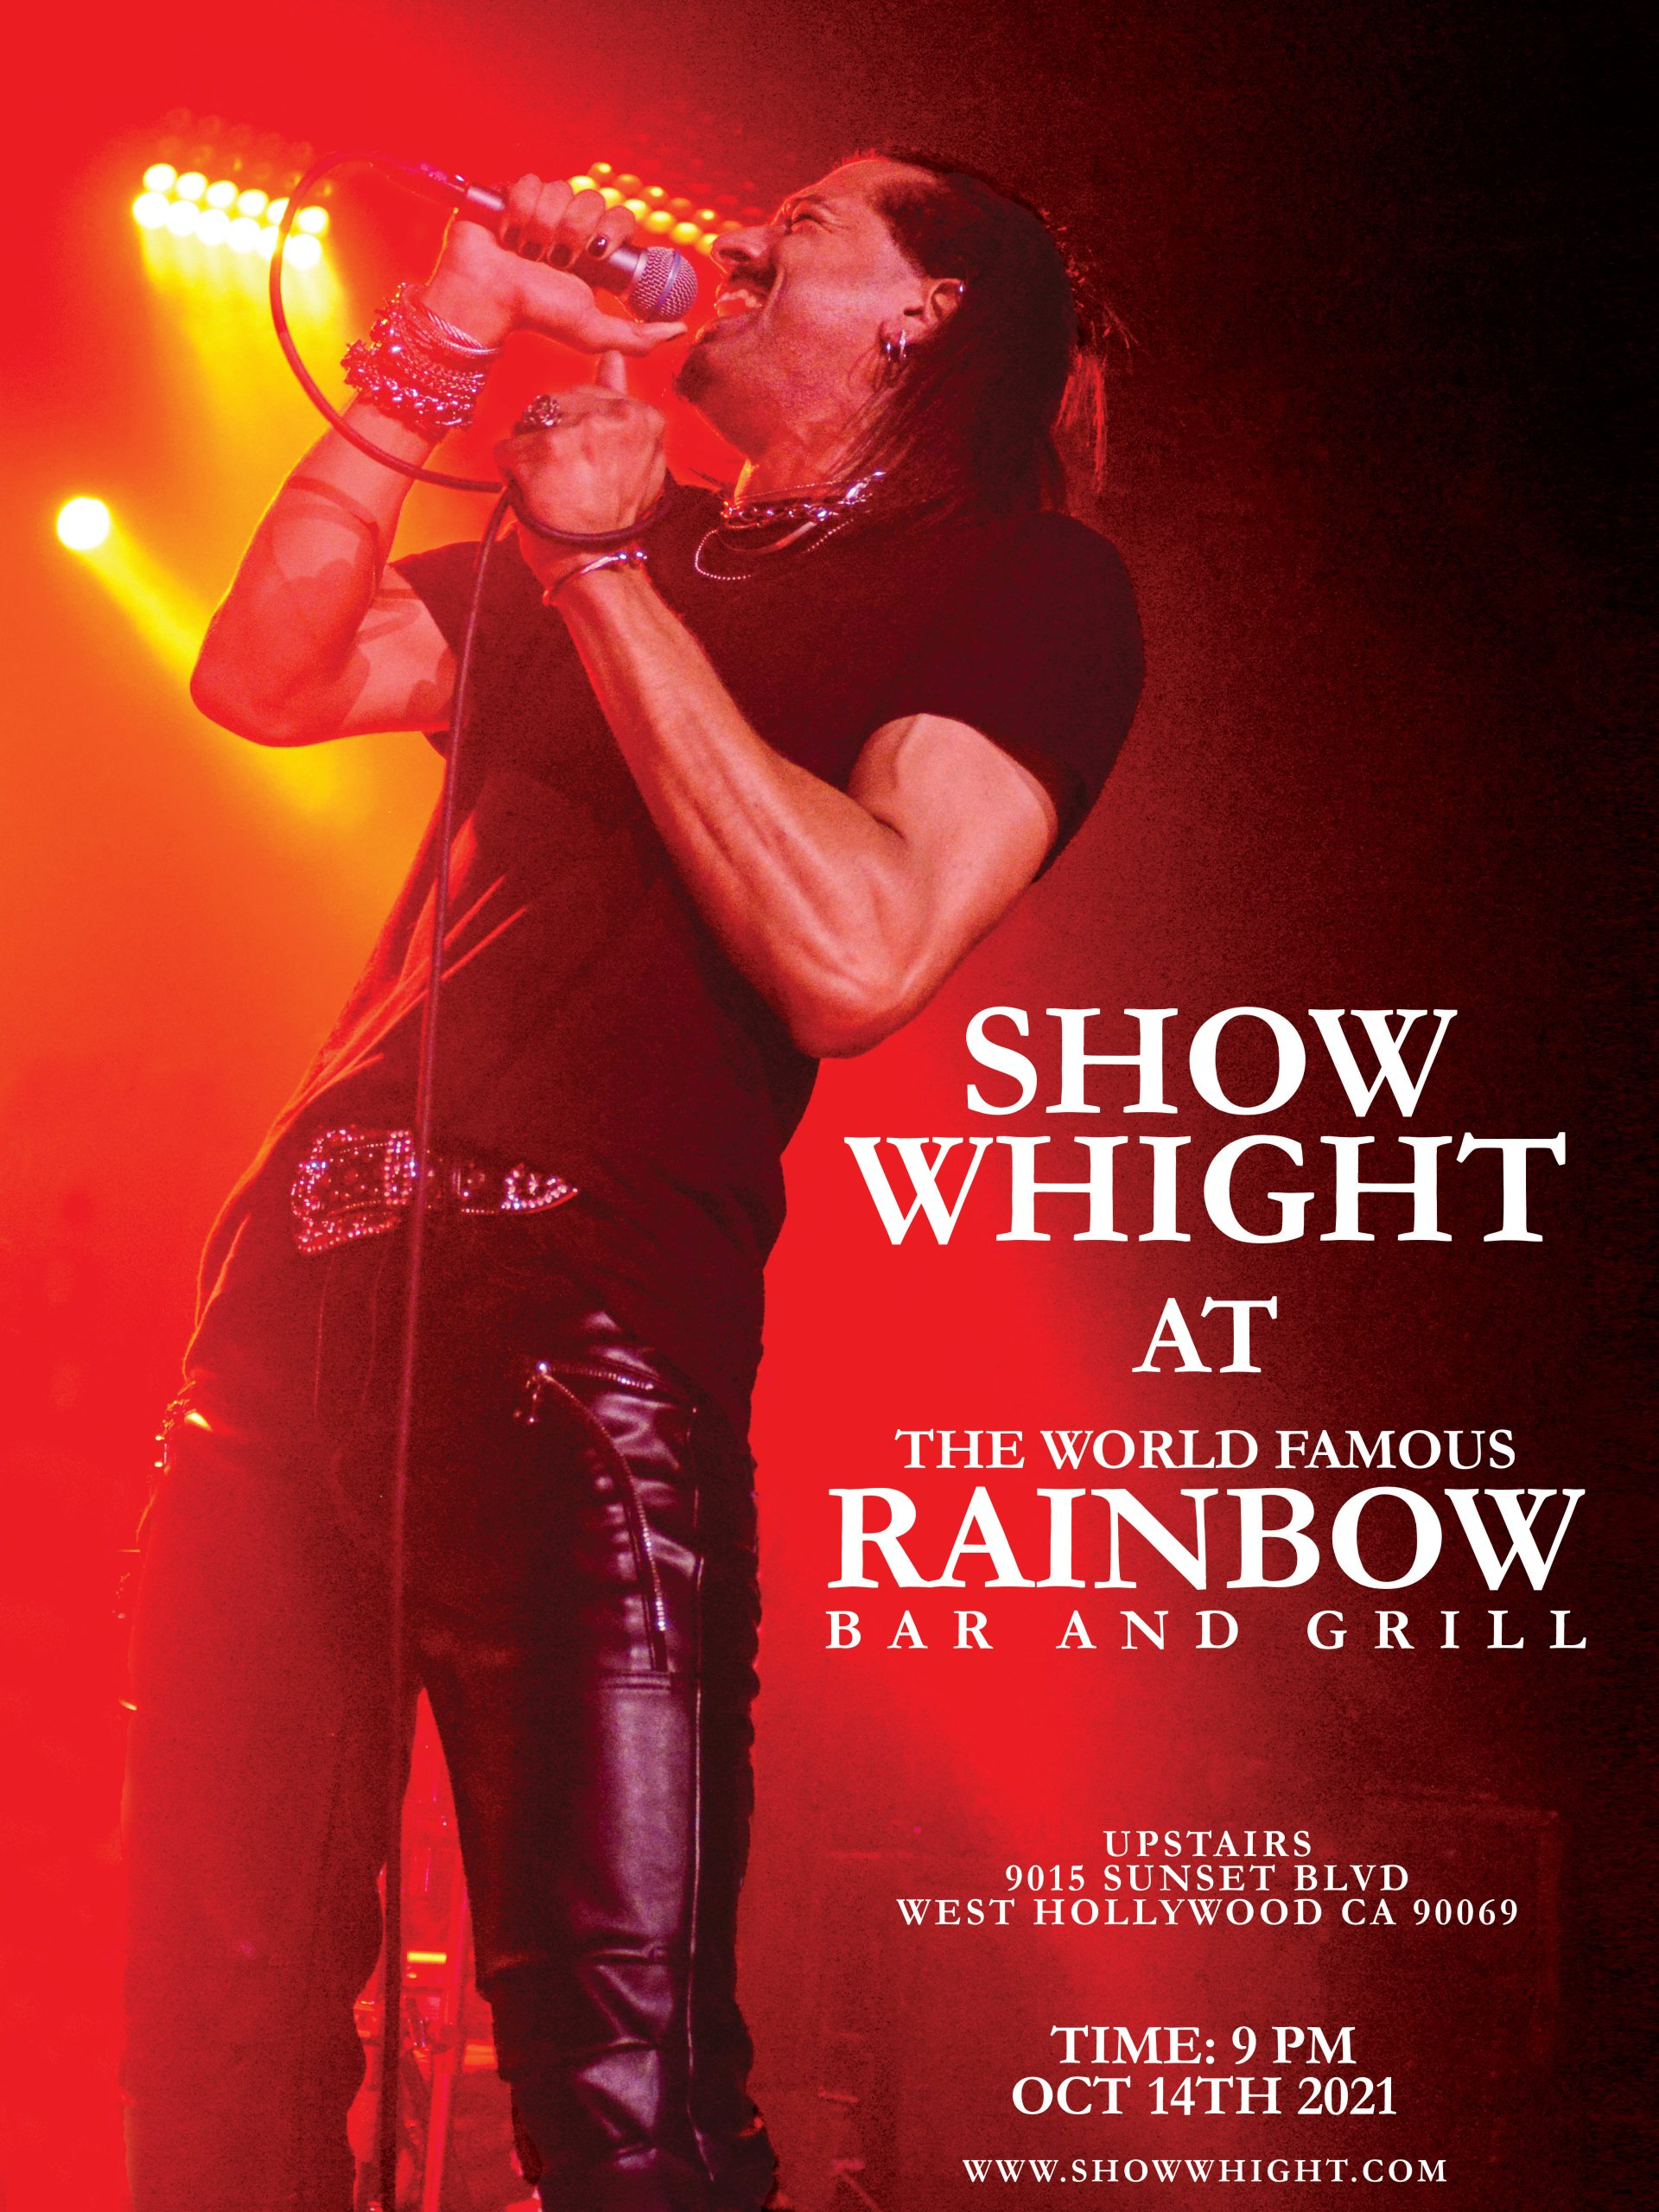 Show Whight will be playing live at the world famous Rainbow Bar and Grill on Thursday, October 14, 2021